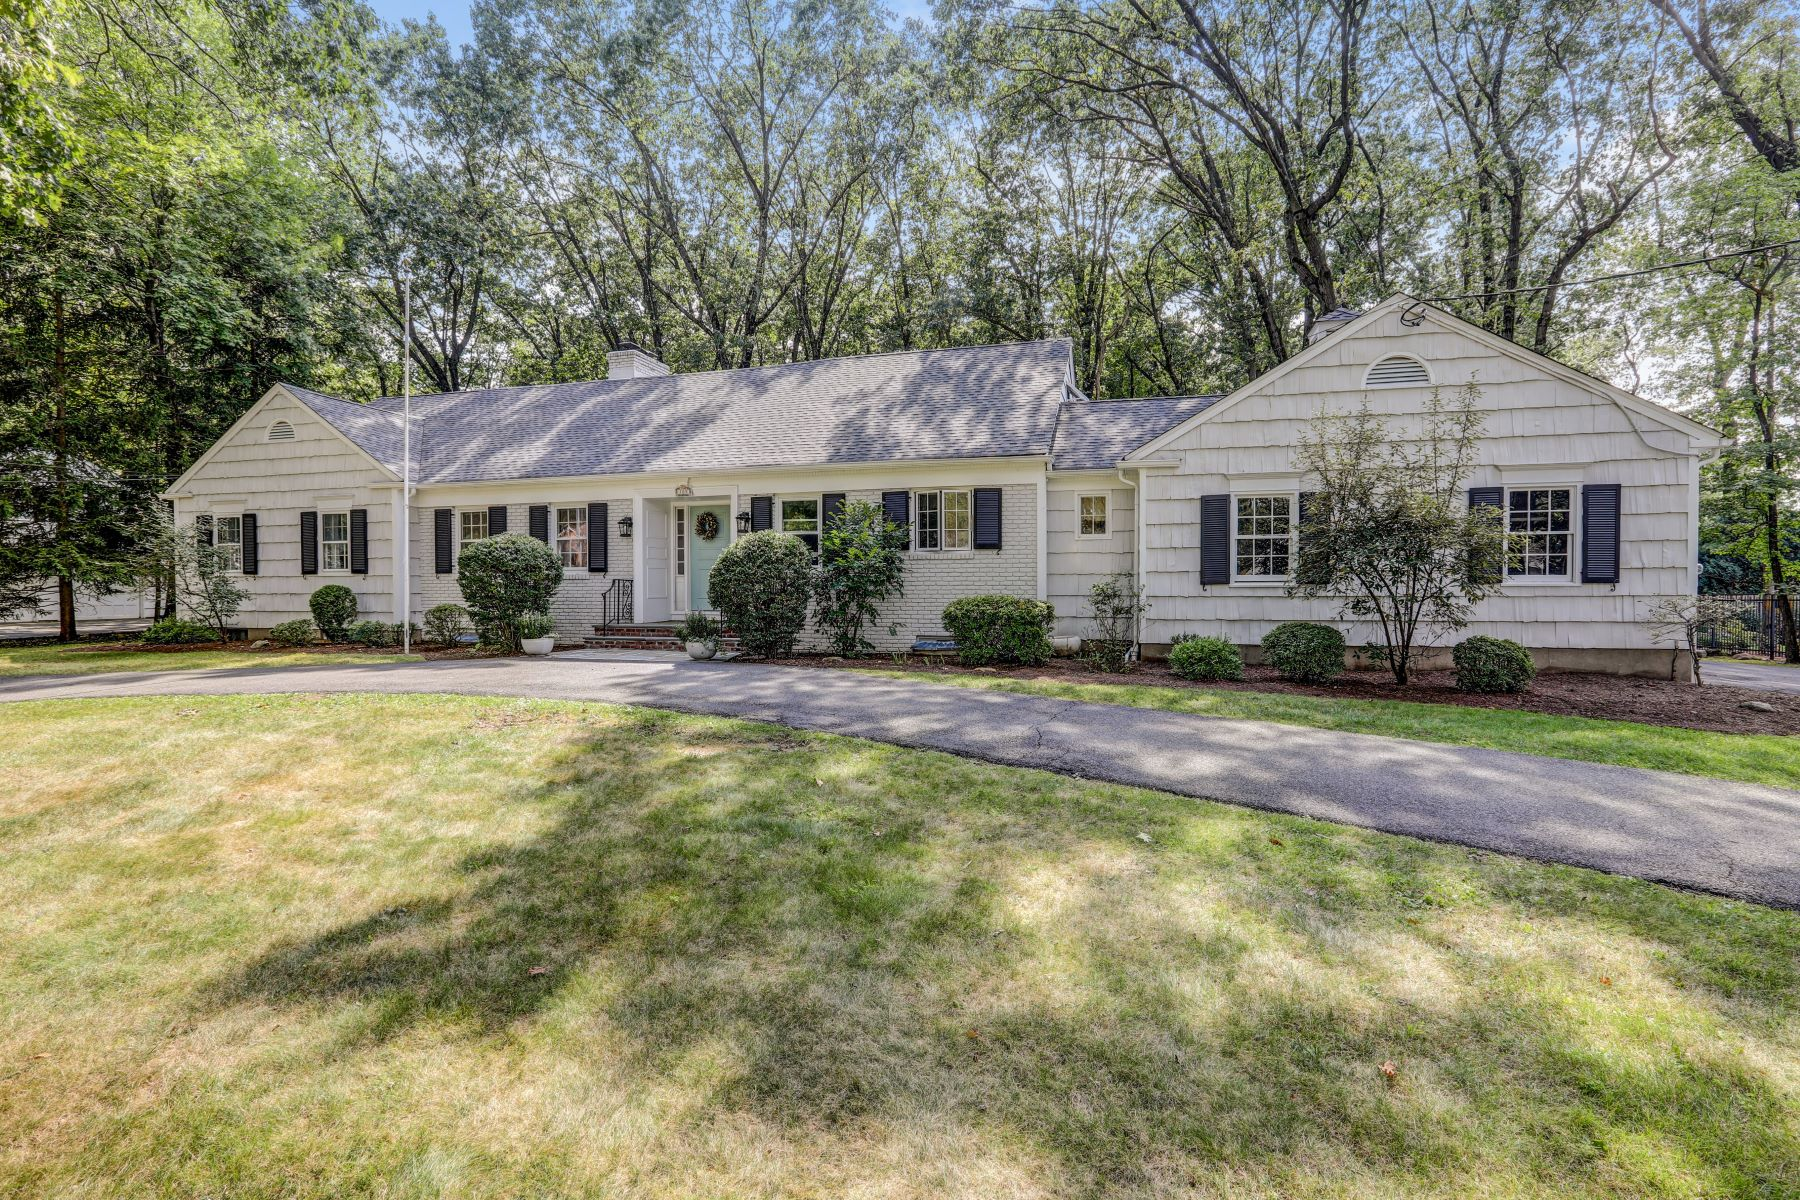 Single Family Homes for Sale at Elegant Ranch 105 Avon Drive Essex Fells, New Jersey 07021 United States